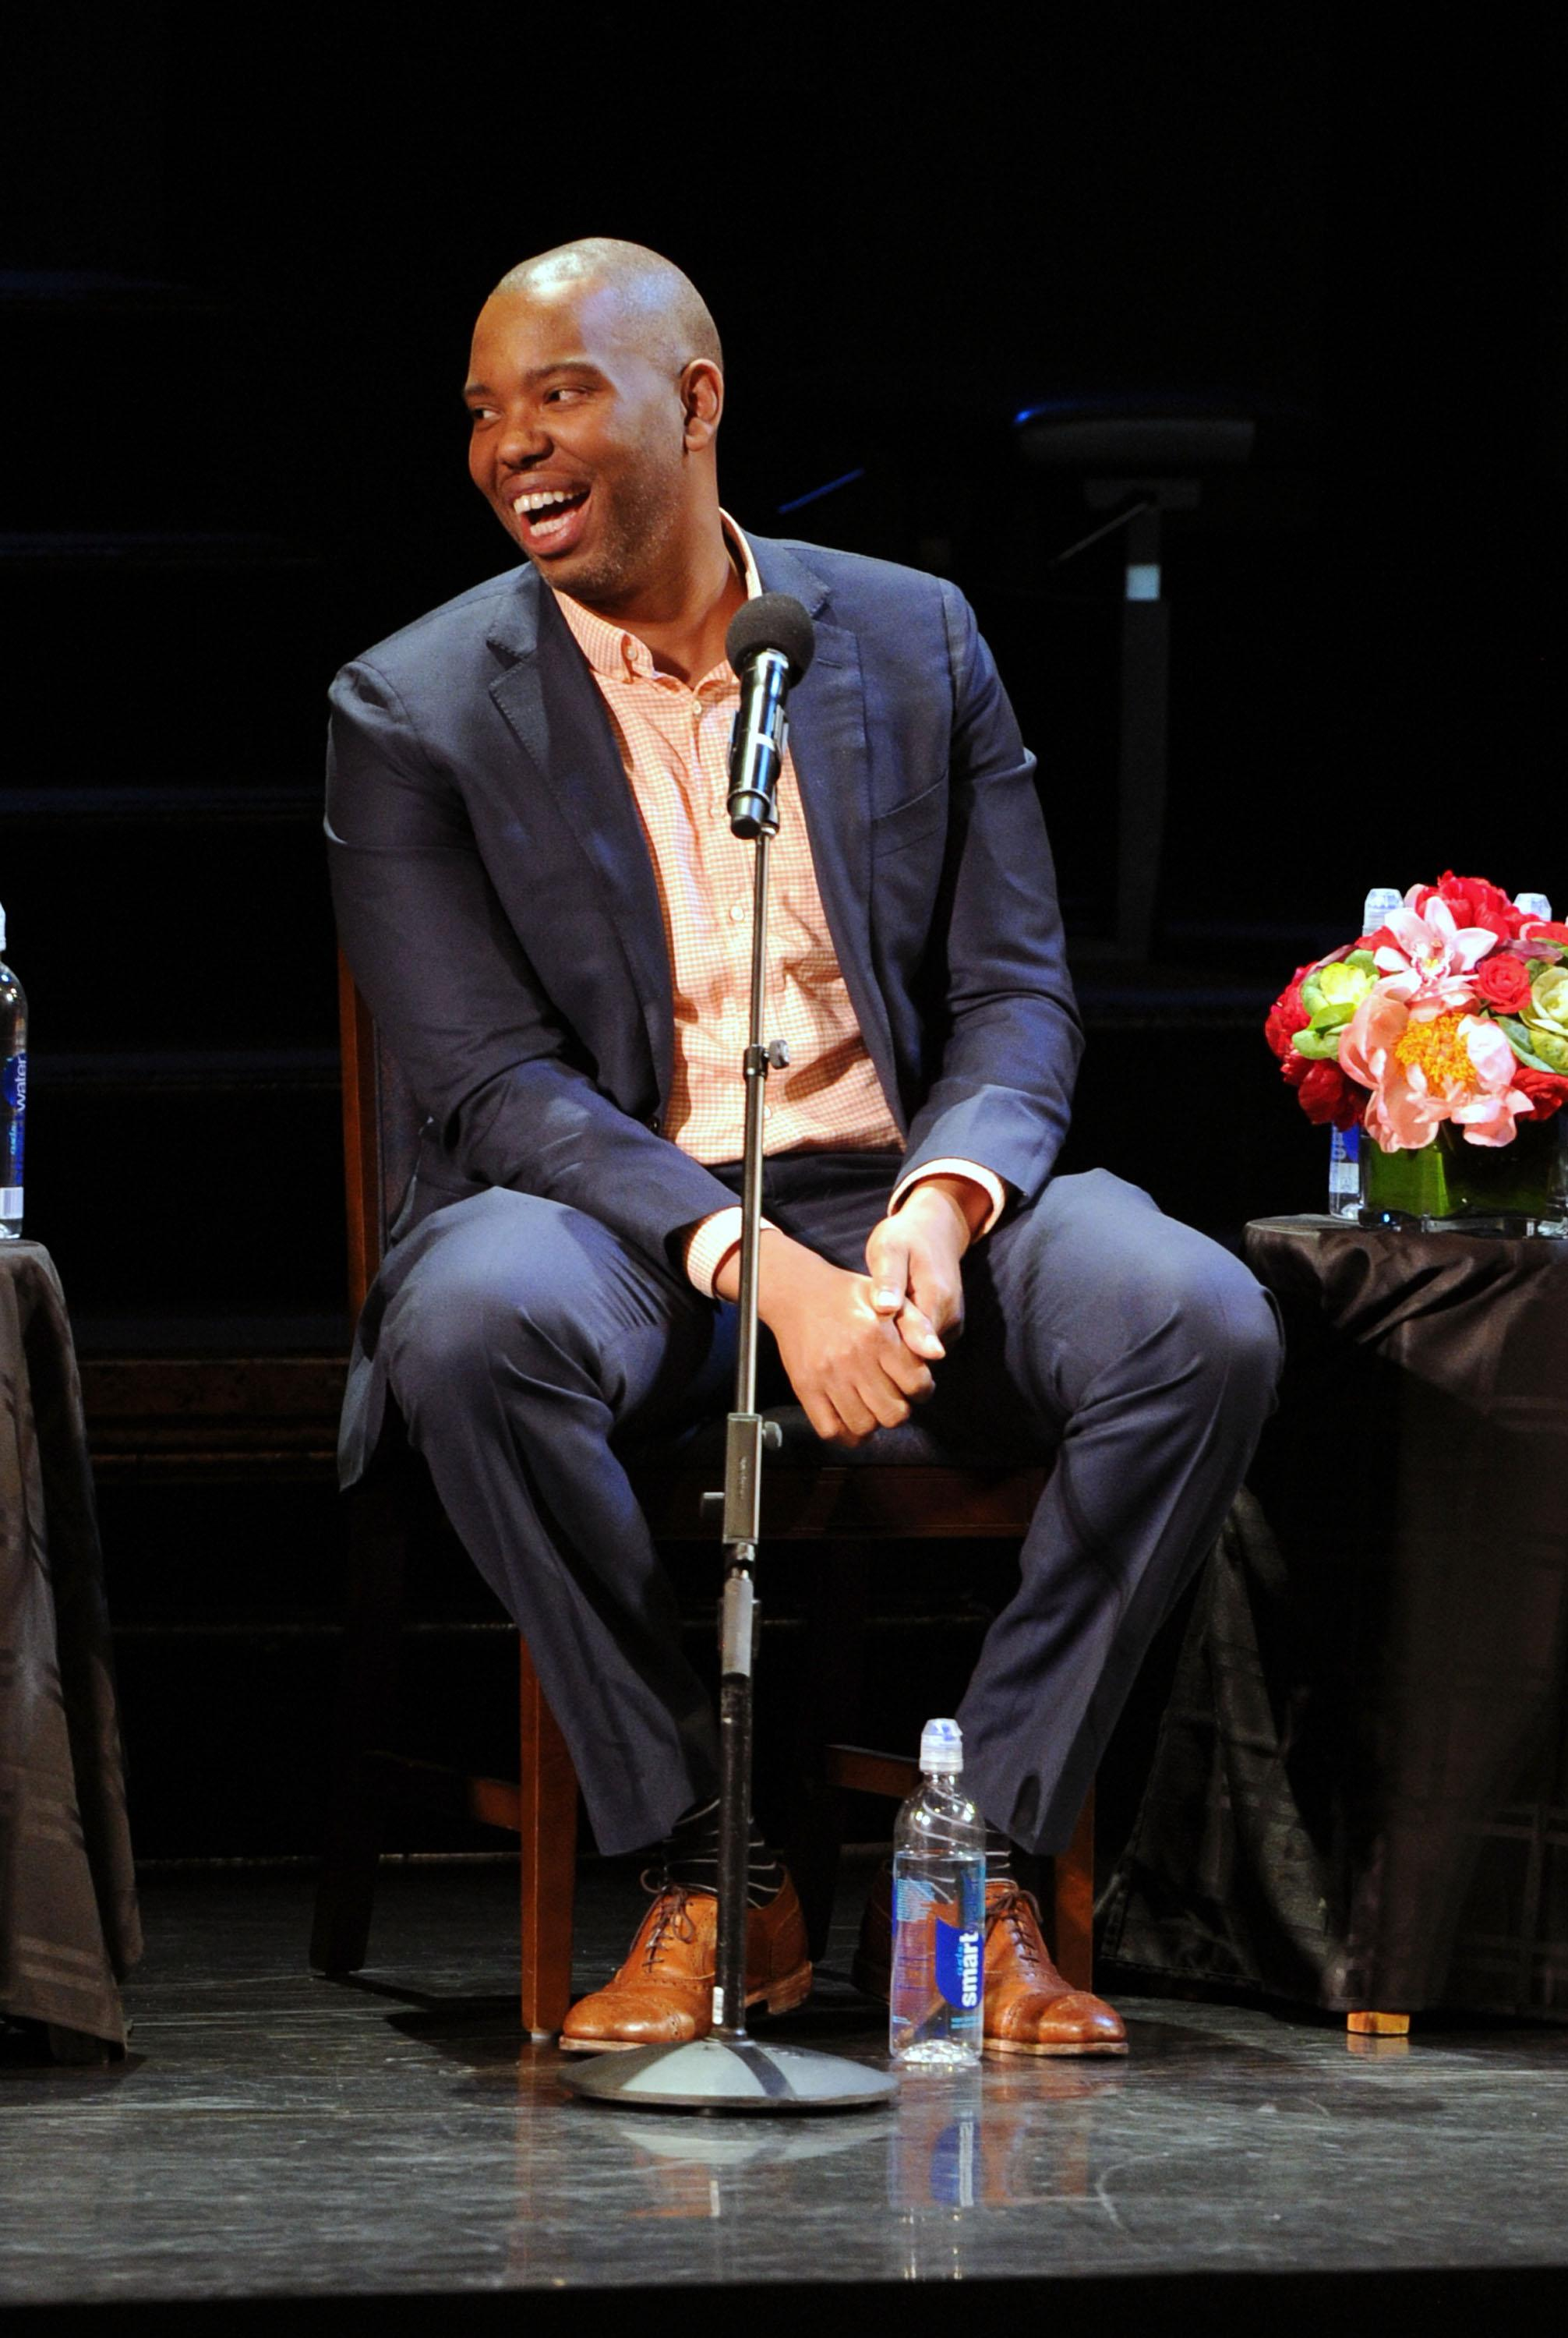 NEW YORK, NY - JUNE 15:  Ta-Nehisi Coates attends Art & Social Activism, a discussion on Broadway with Ta-Nehisi Coates, Toni Morrison and Sonia Sanchez on June 15, 2016 in New York City.  (Photo by Craig Barritt/Getty Images for The Stella Adler Studio of Acting)